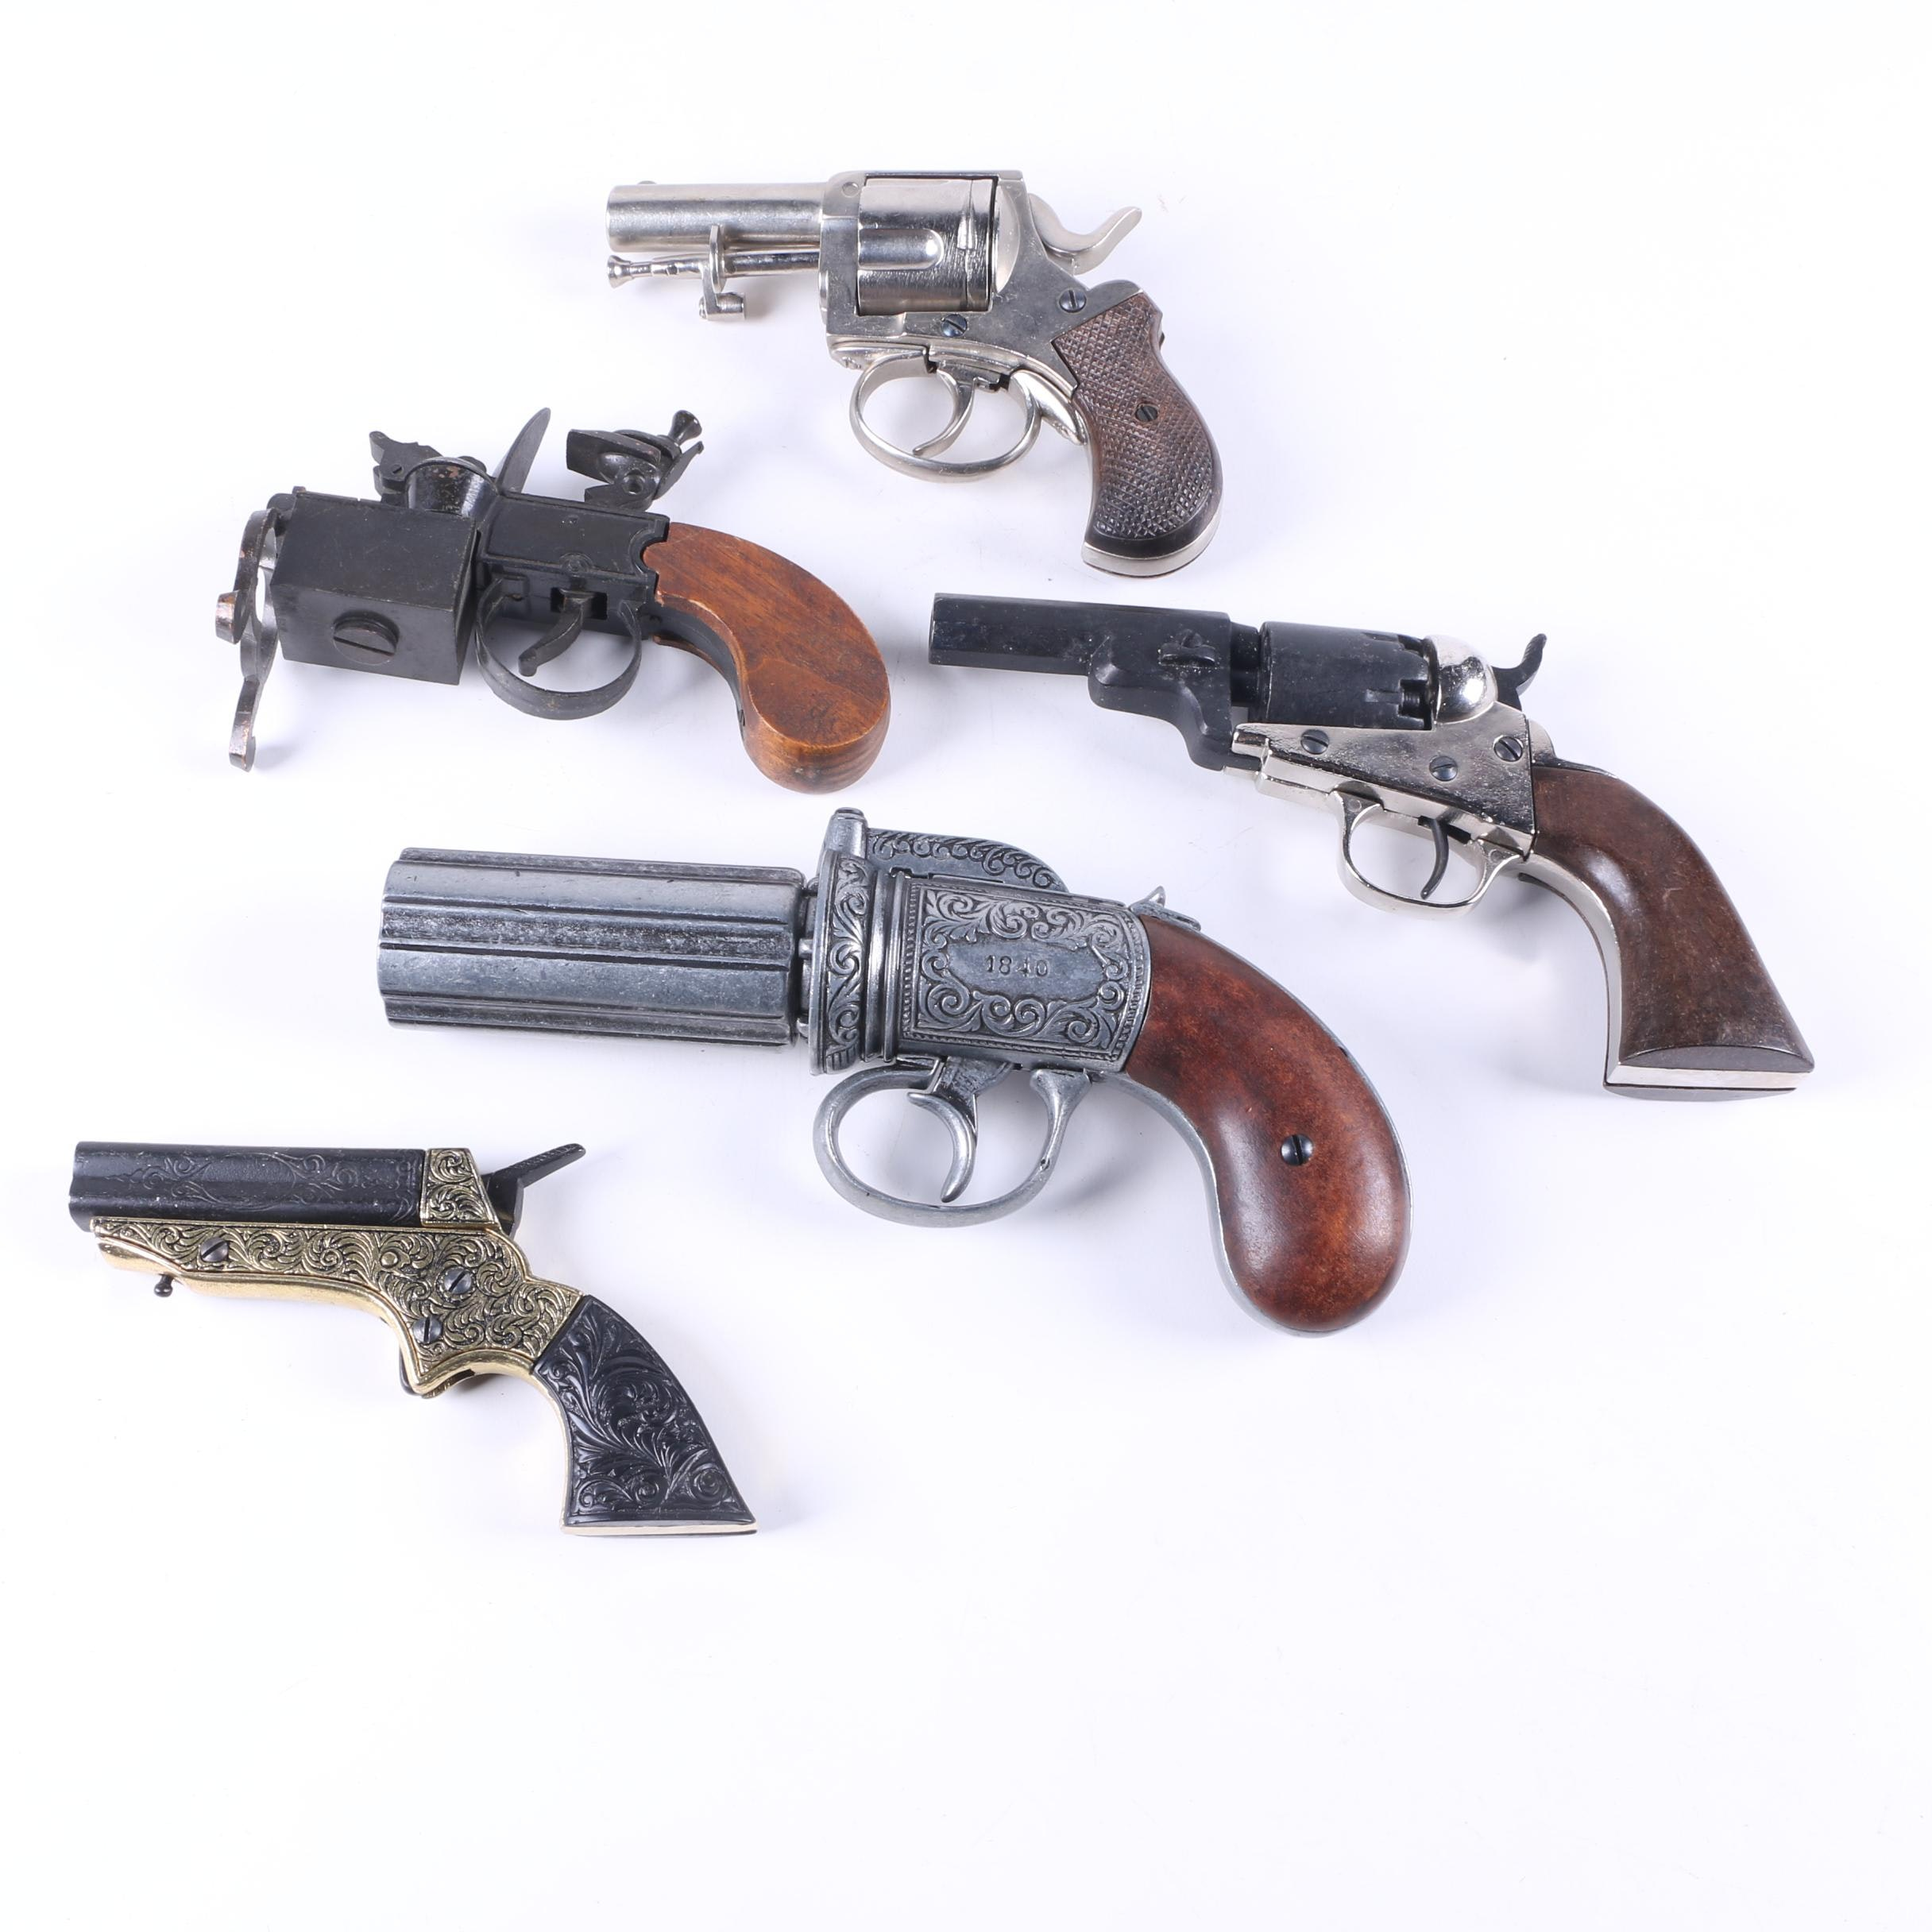 Assorted Metal and Wood Toy Handguns